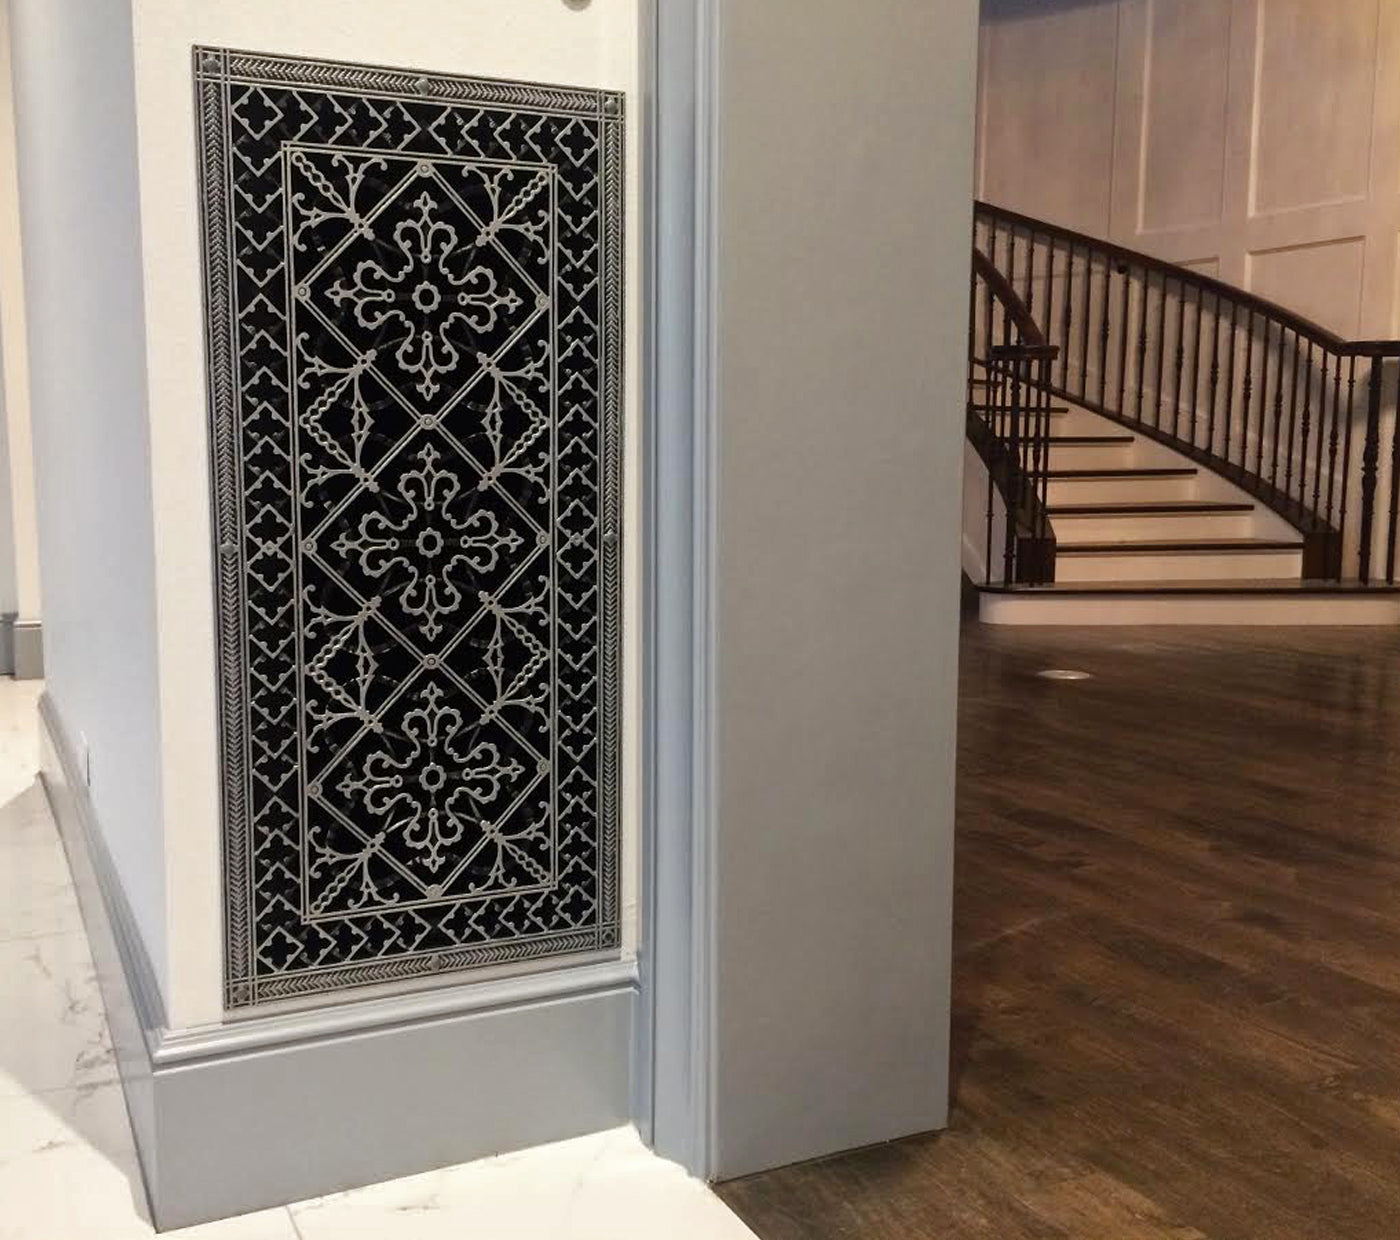 Picture of: Decorative Hvac Vent Covers With Free Hand Applied Designer Finishes